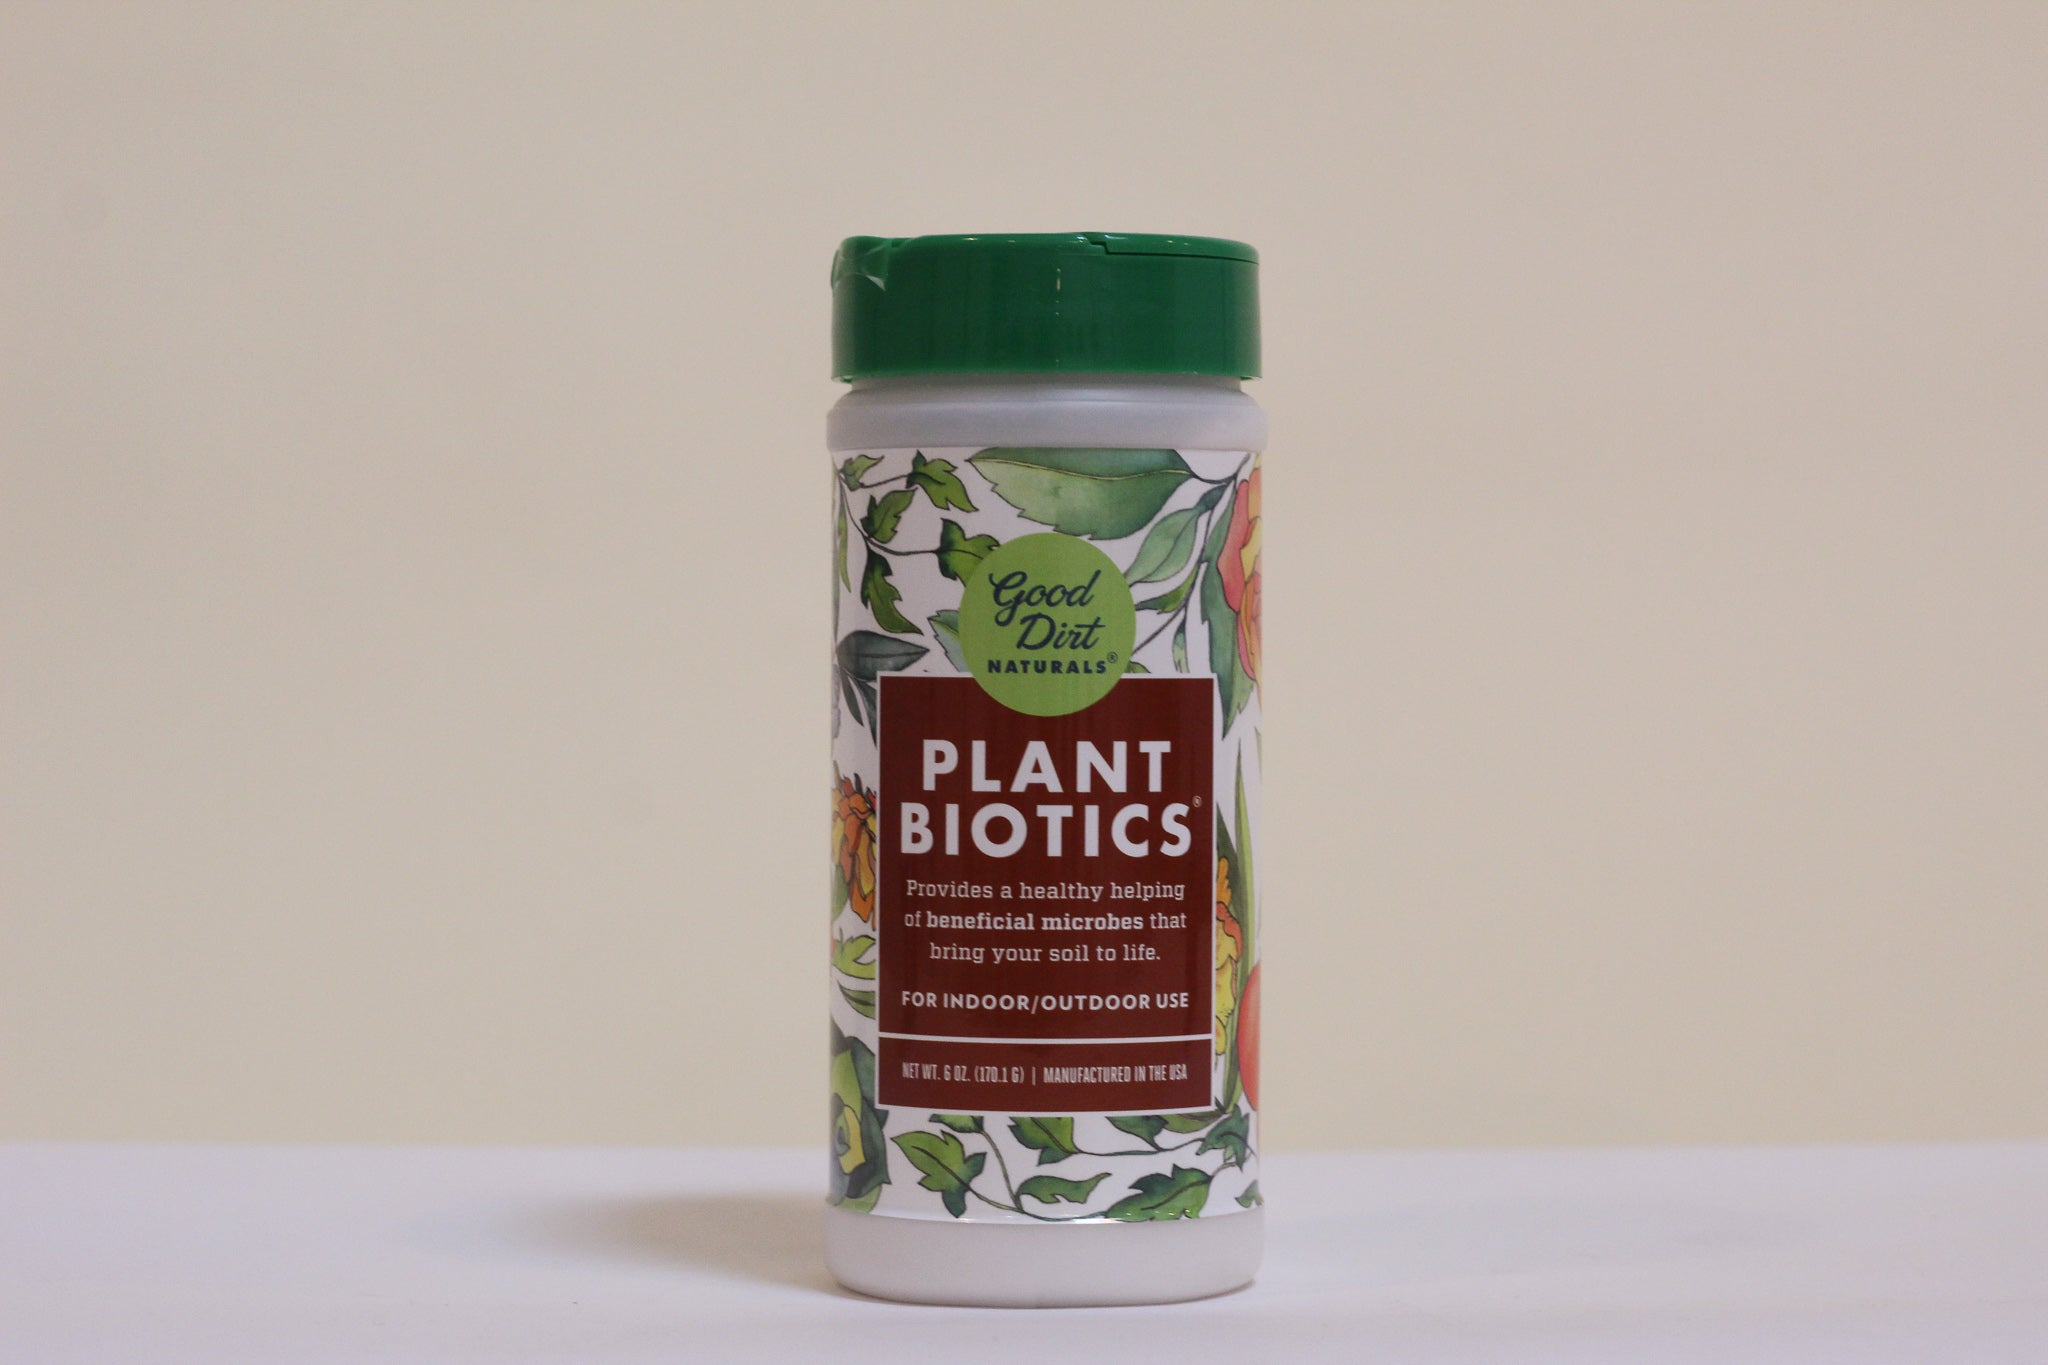 Good Dirt Plant Biotics